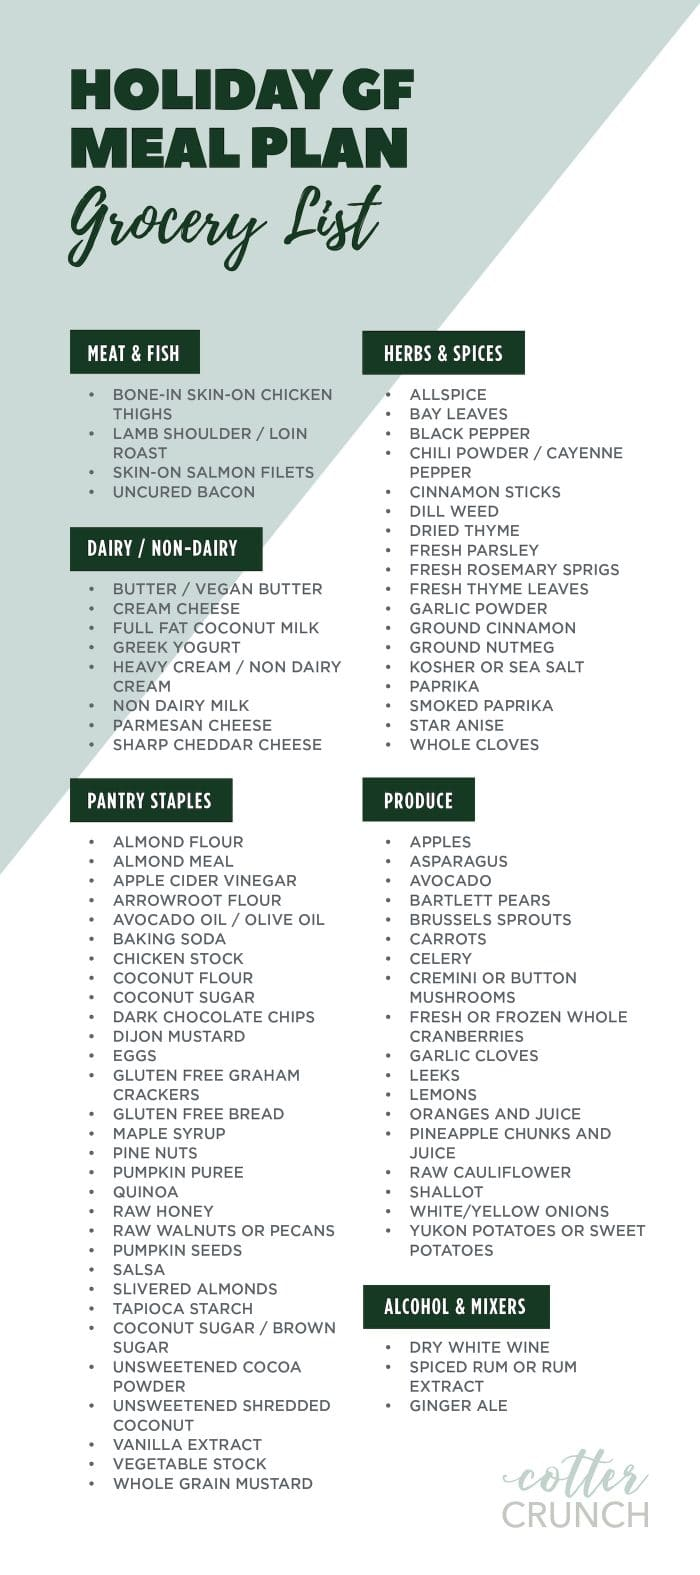 infographic grocery list for a holiday glluten free meal plan